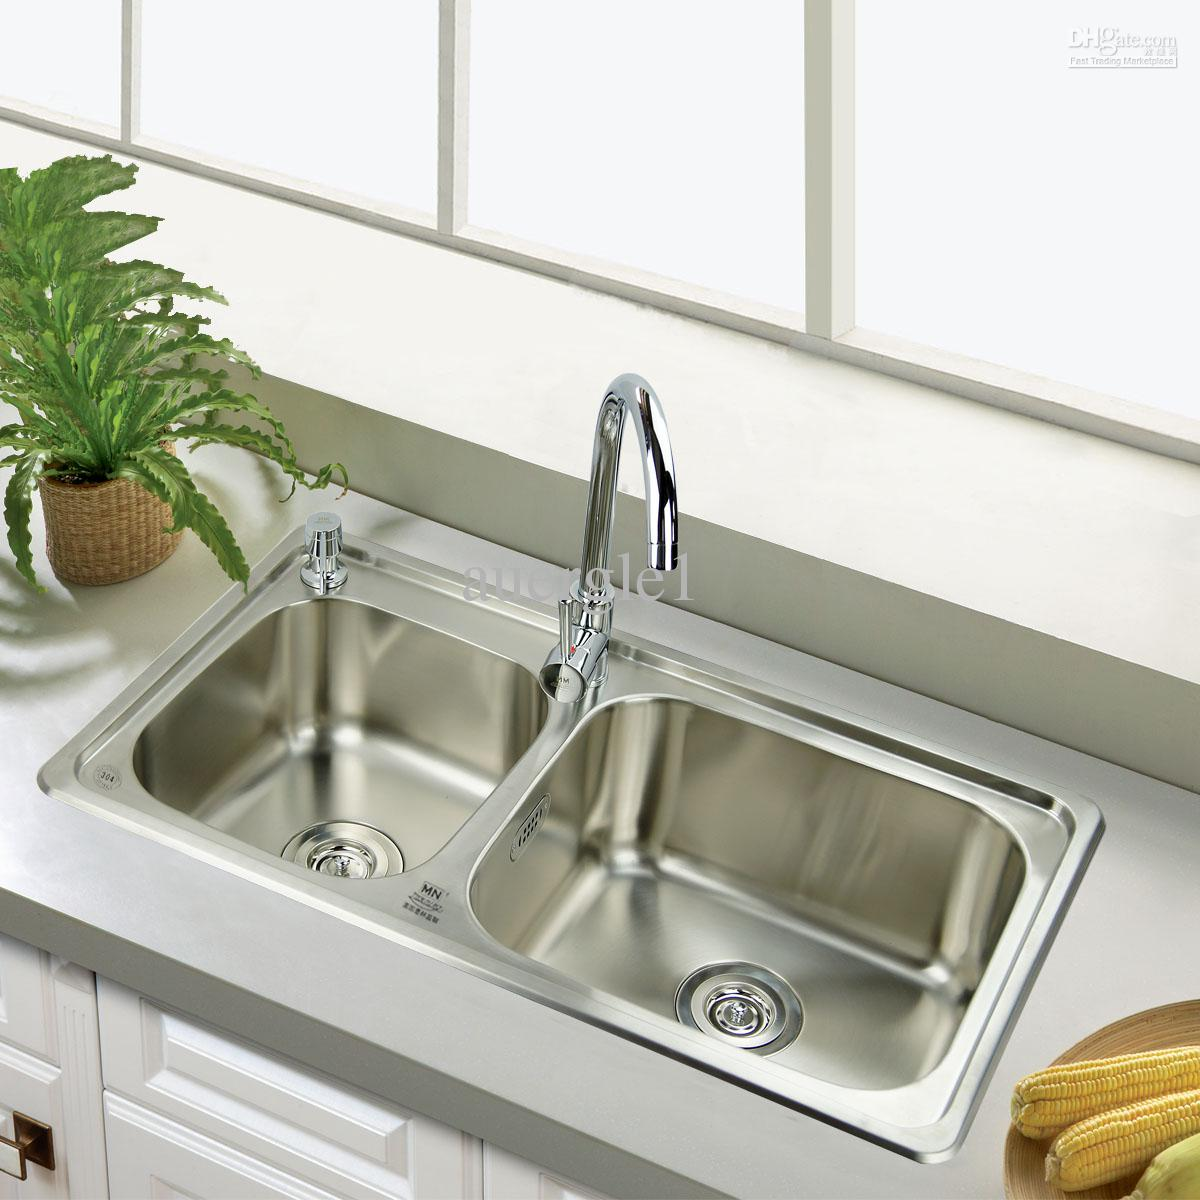 essential blanco of utility sink picture kitchen drop sinks single stainless laundry bowl in steel